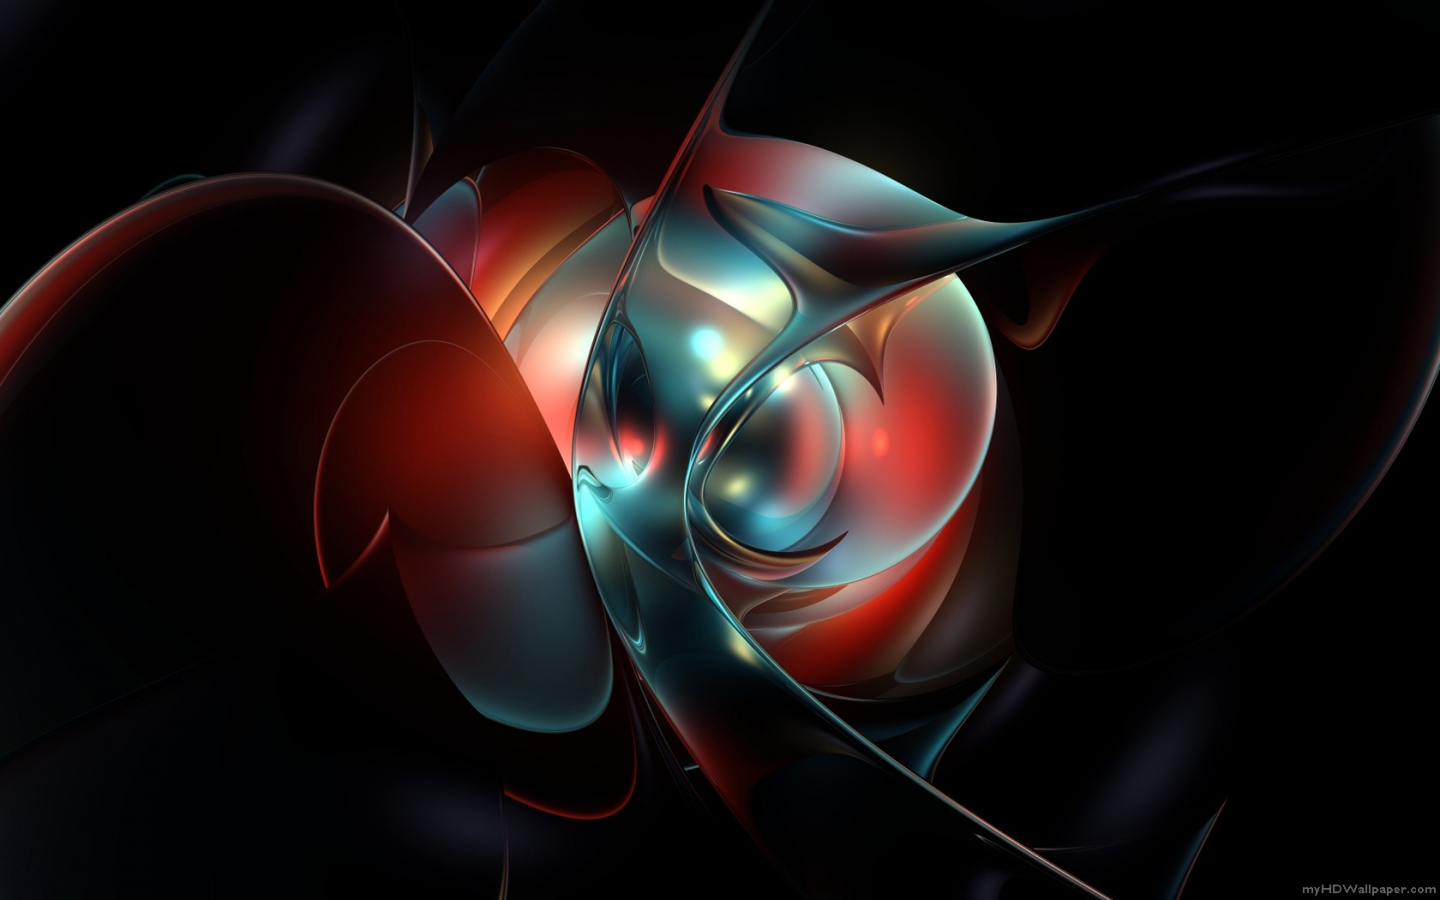 Abstract wallpaper widescreen hd 1440x900